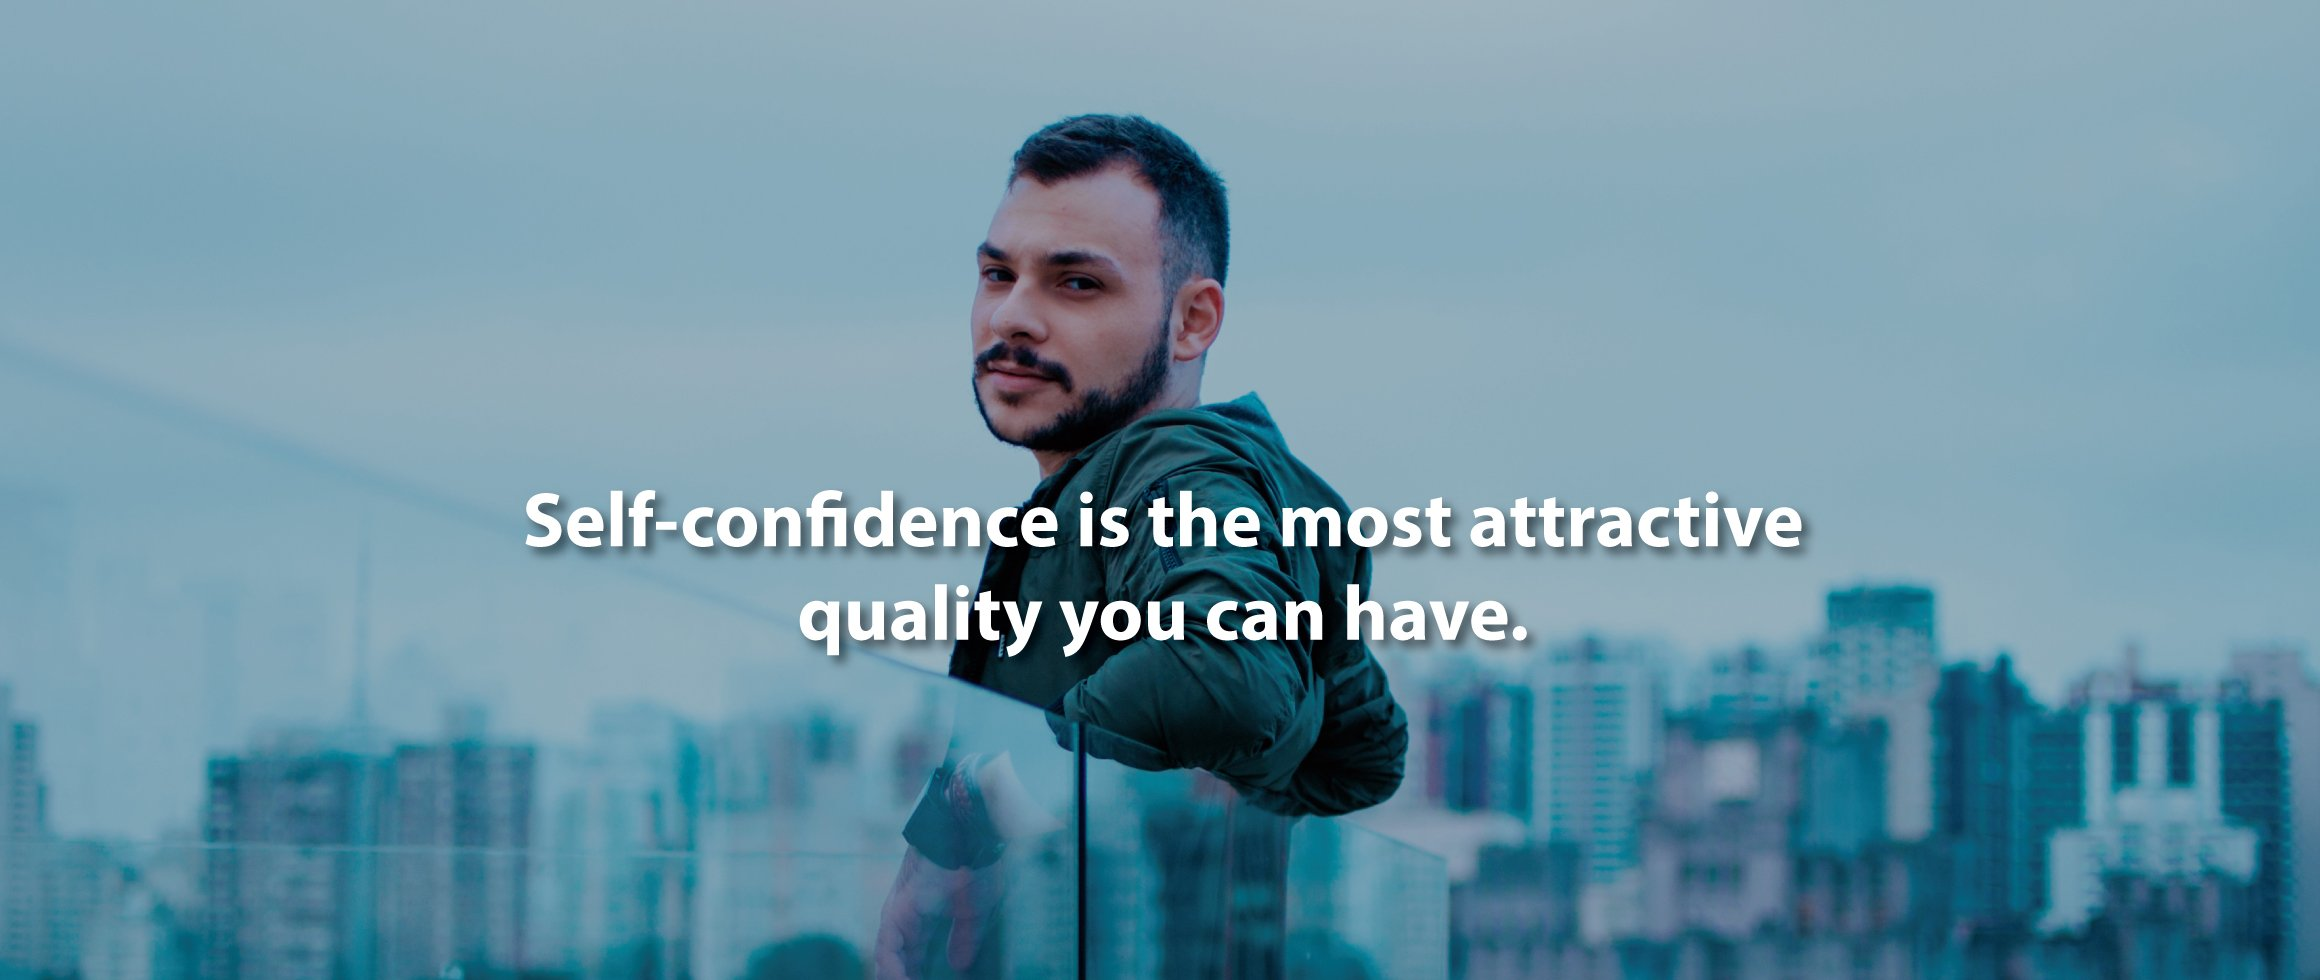 Improve Self-Confidence